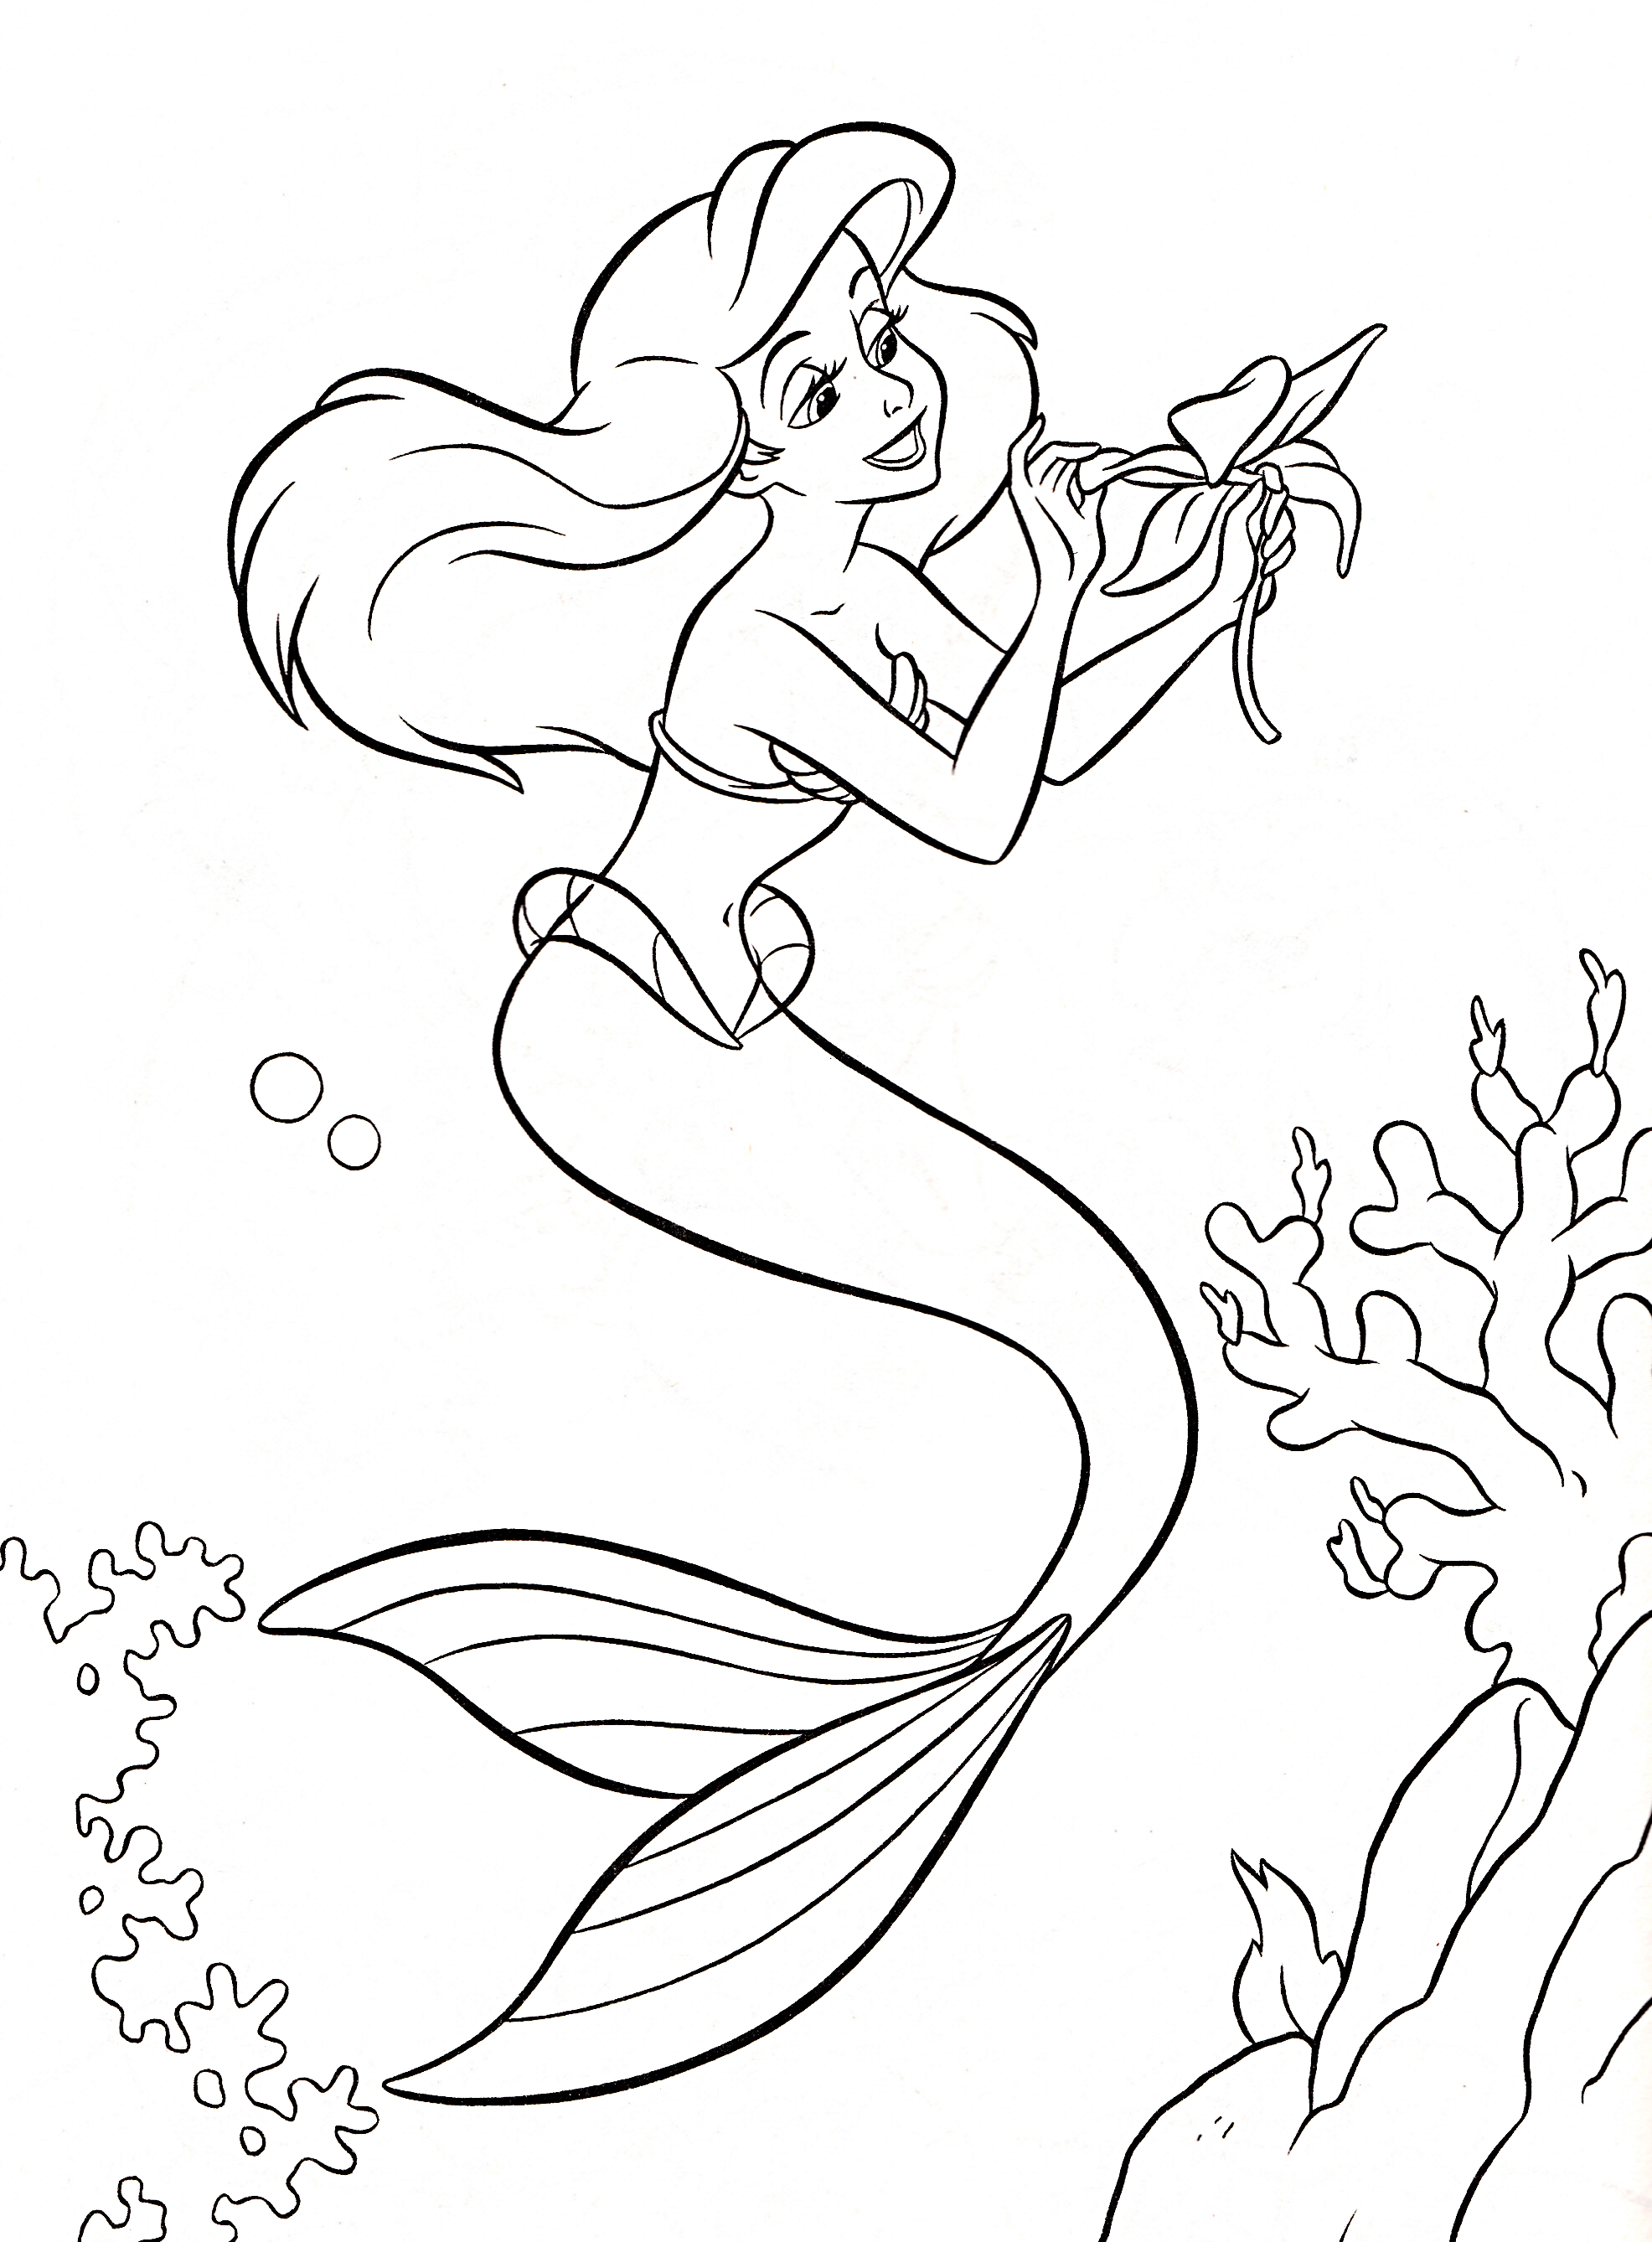 Coloring Pages Walt Disney : Disney characters coloring pages coloringpages